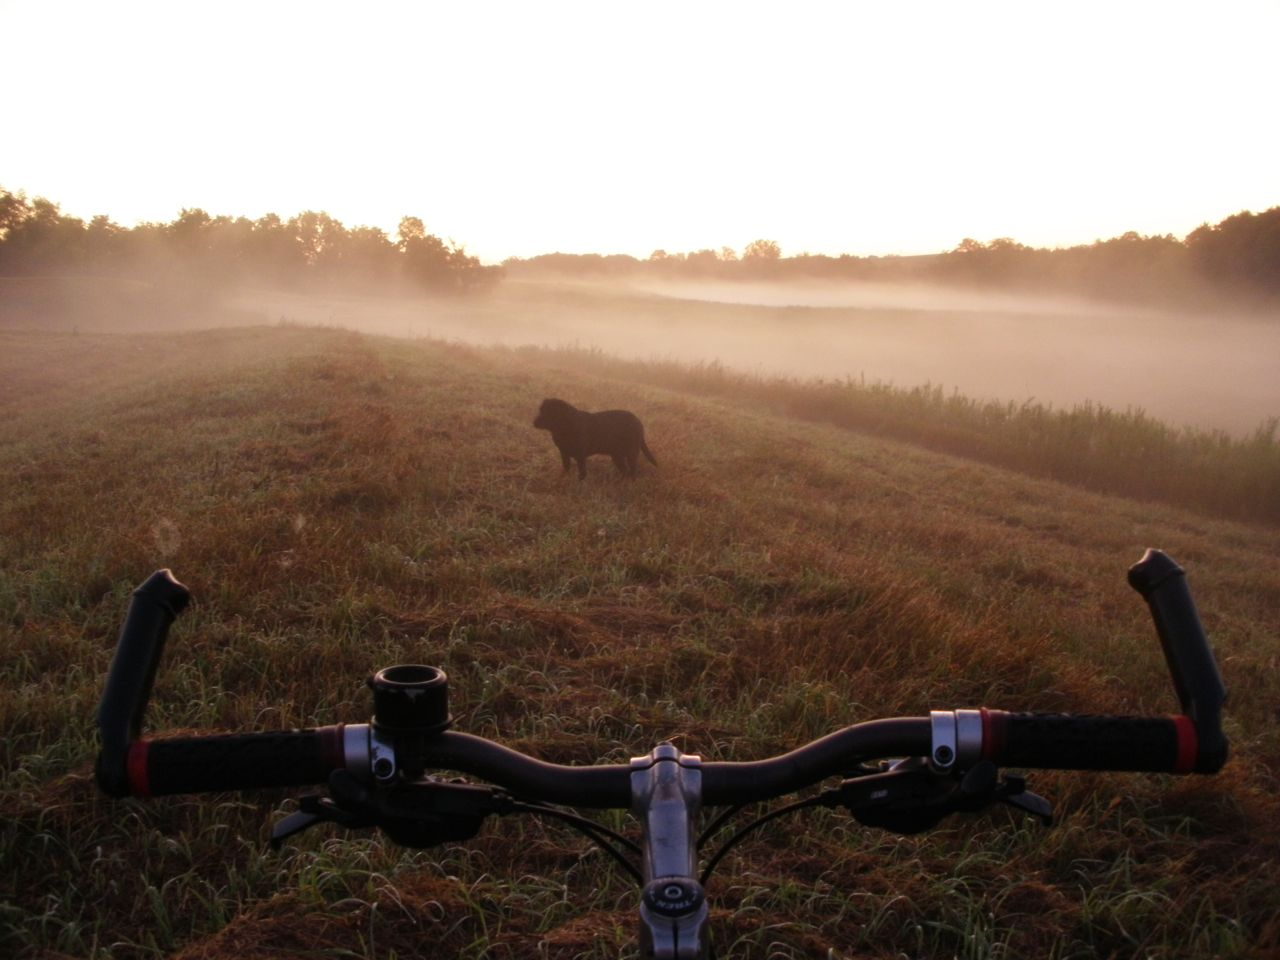 Click image for larger version  Name:Foggy morn.jpg Views:52 Size:126.4 KB ID:194014